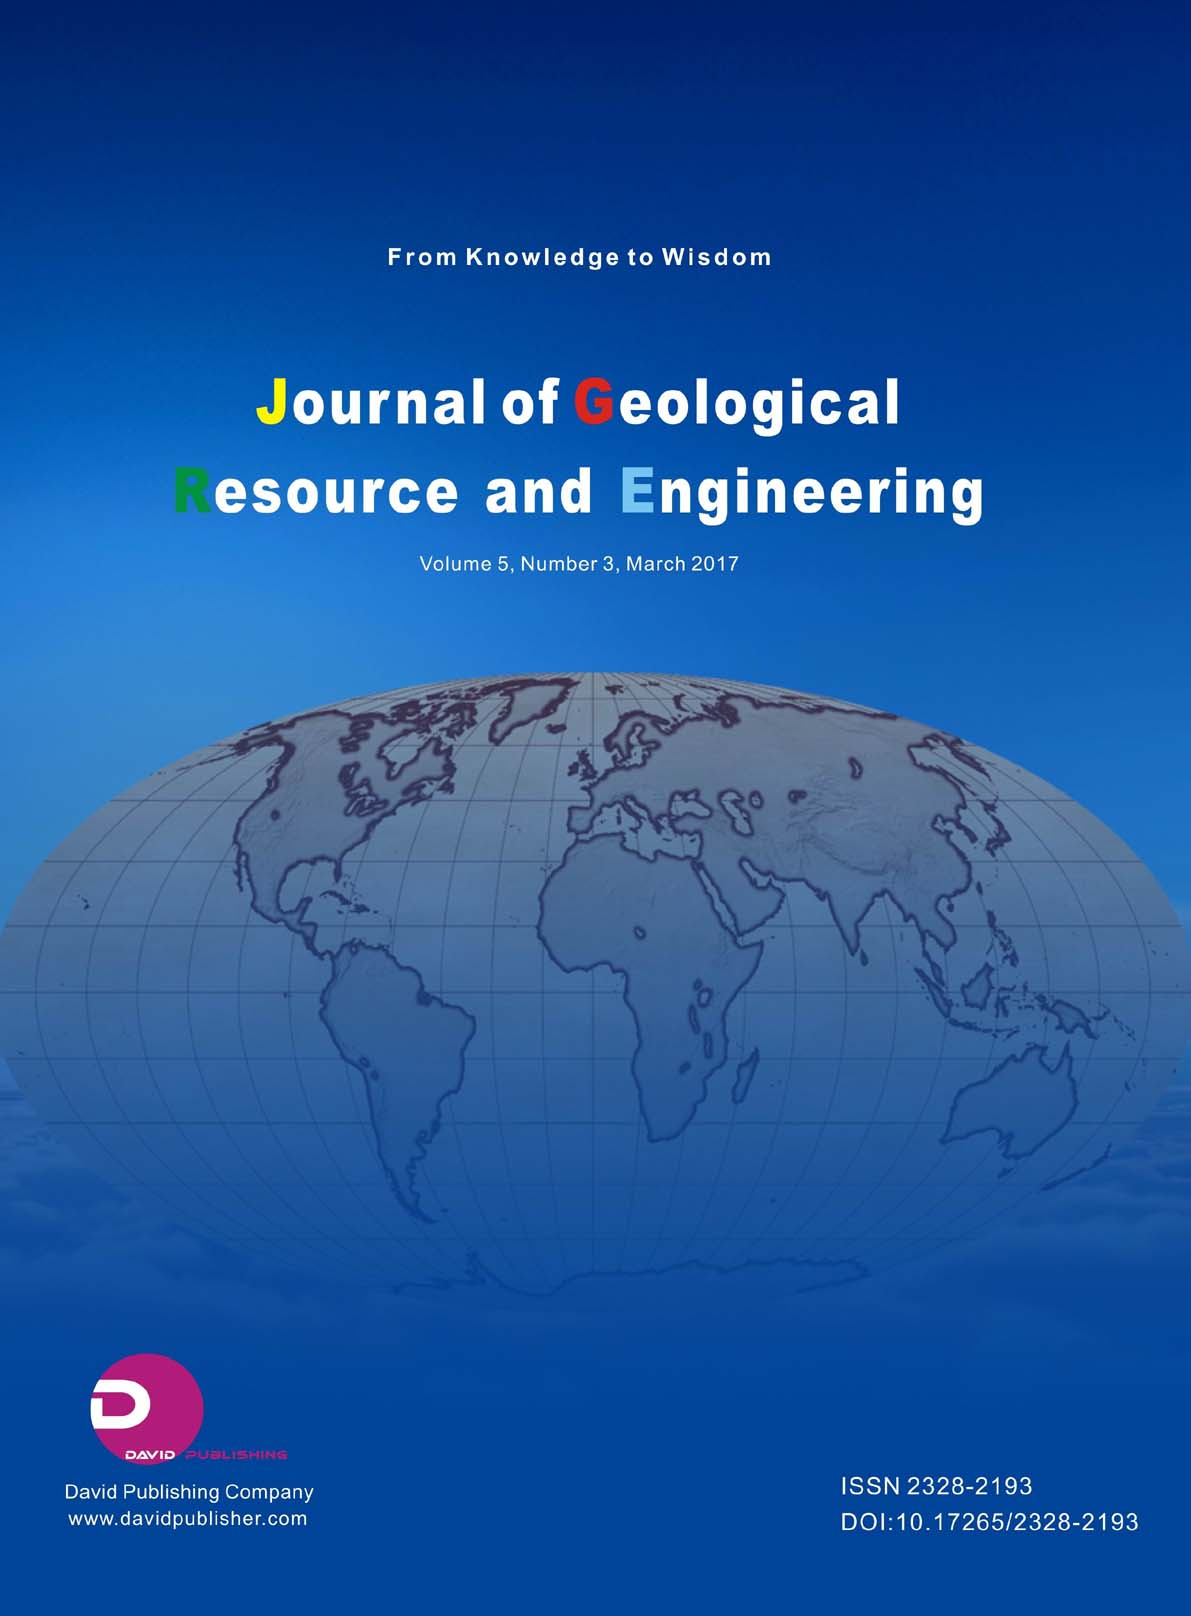 Journal of Geological Resource and Engineering